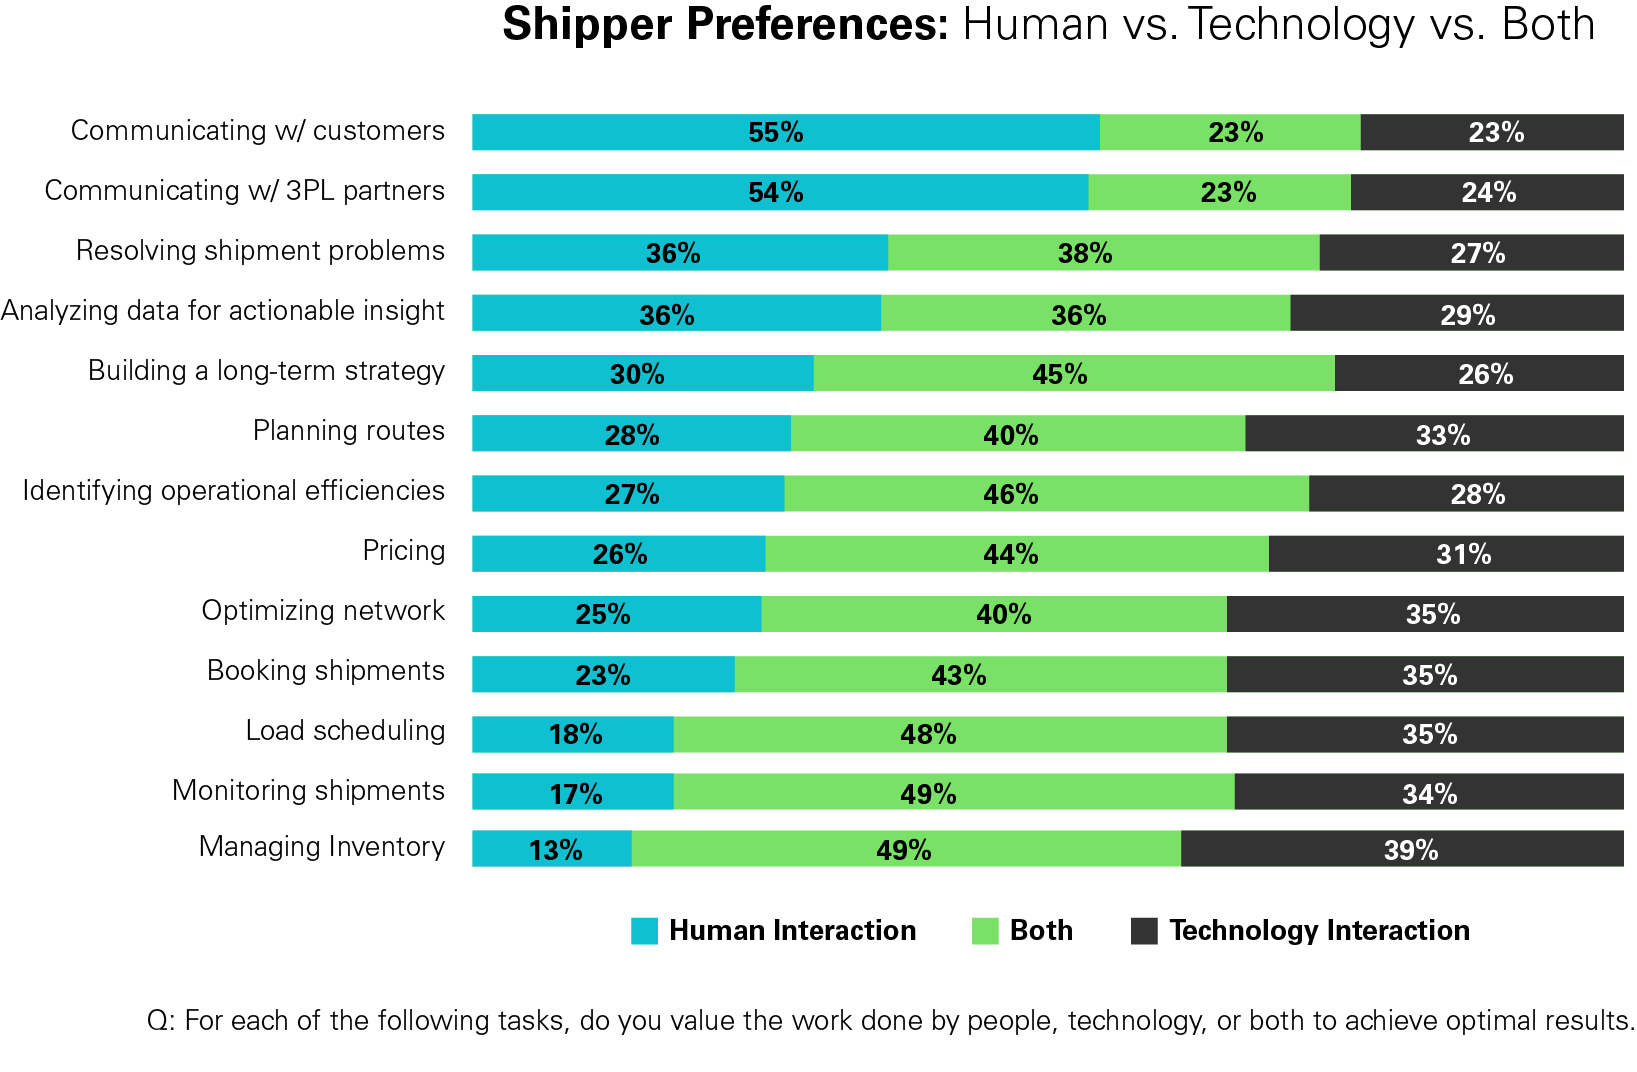 Shipper Preferences: Human vs. Technology vs. Both bar chart